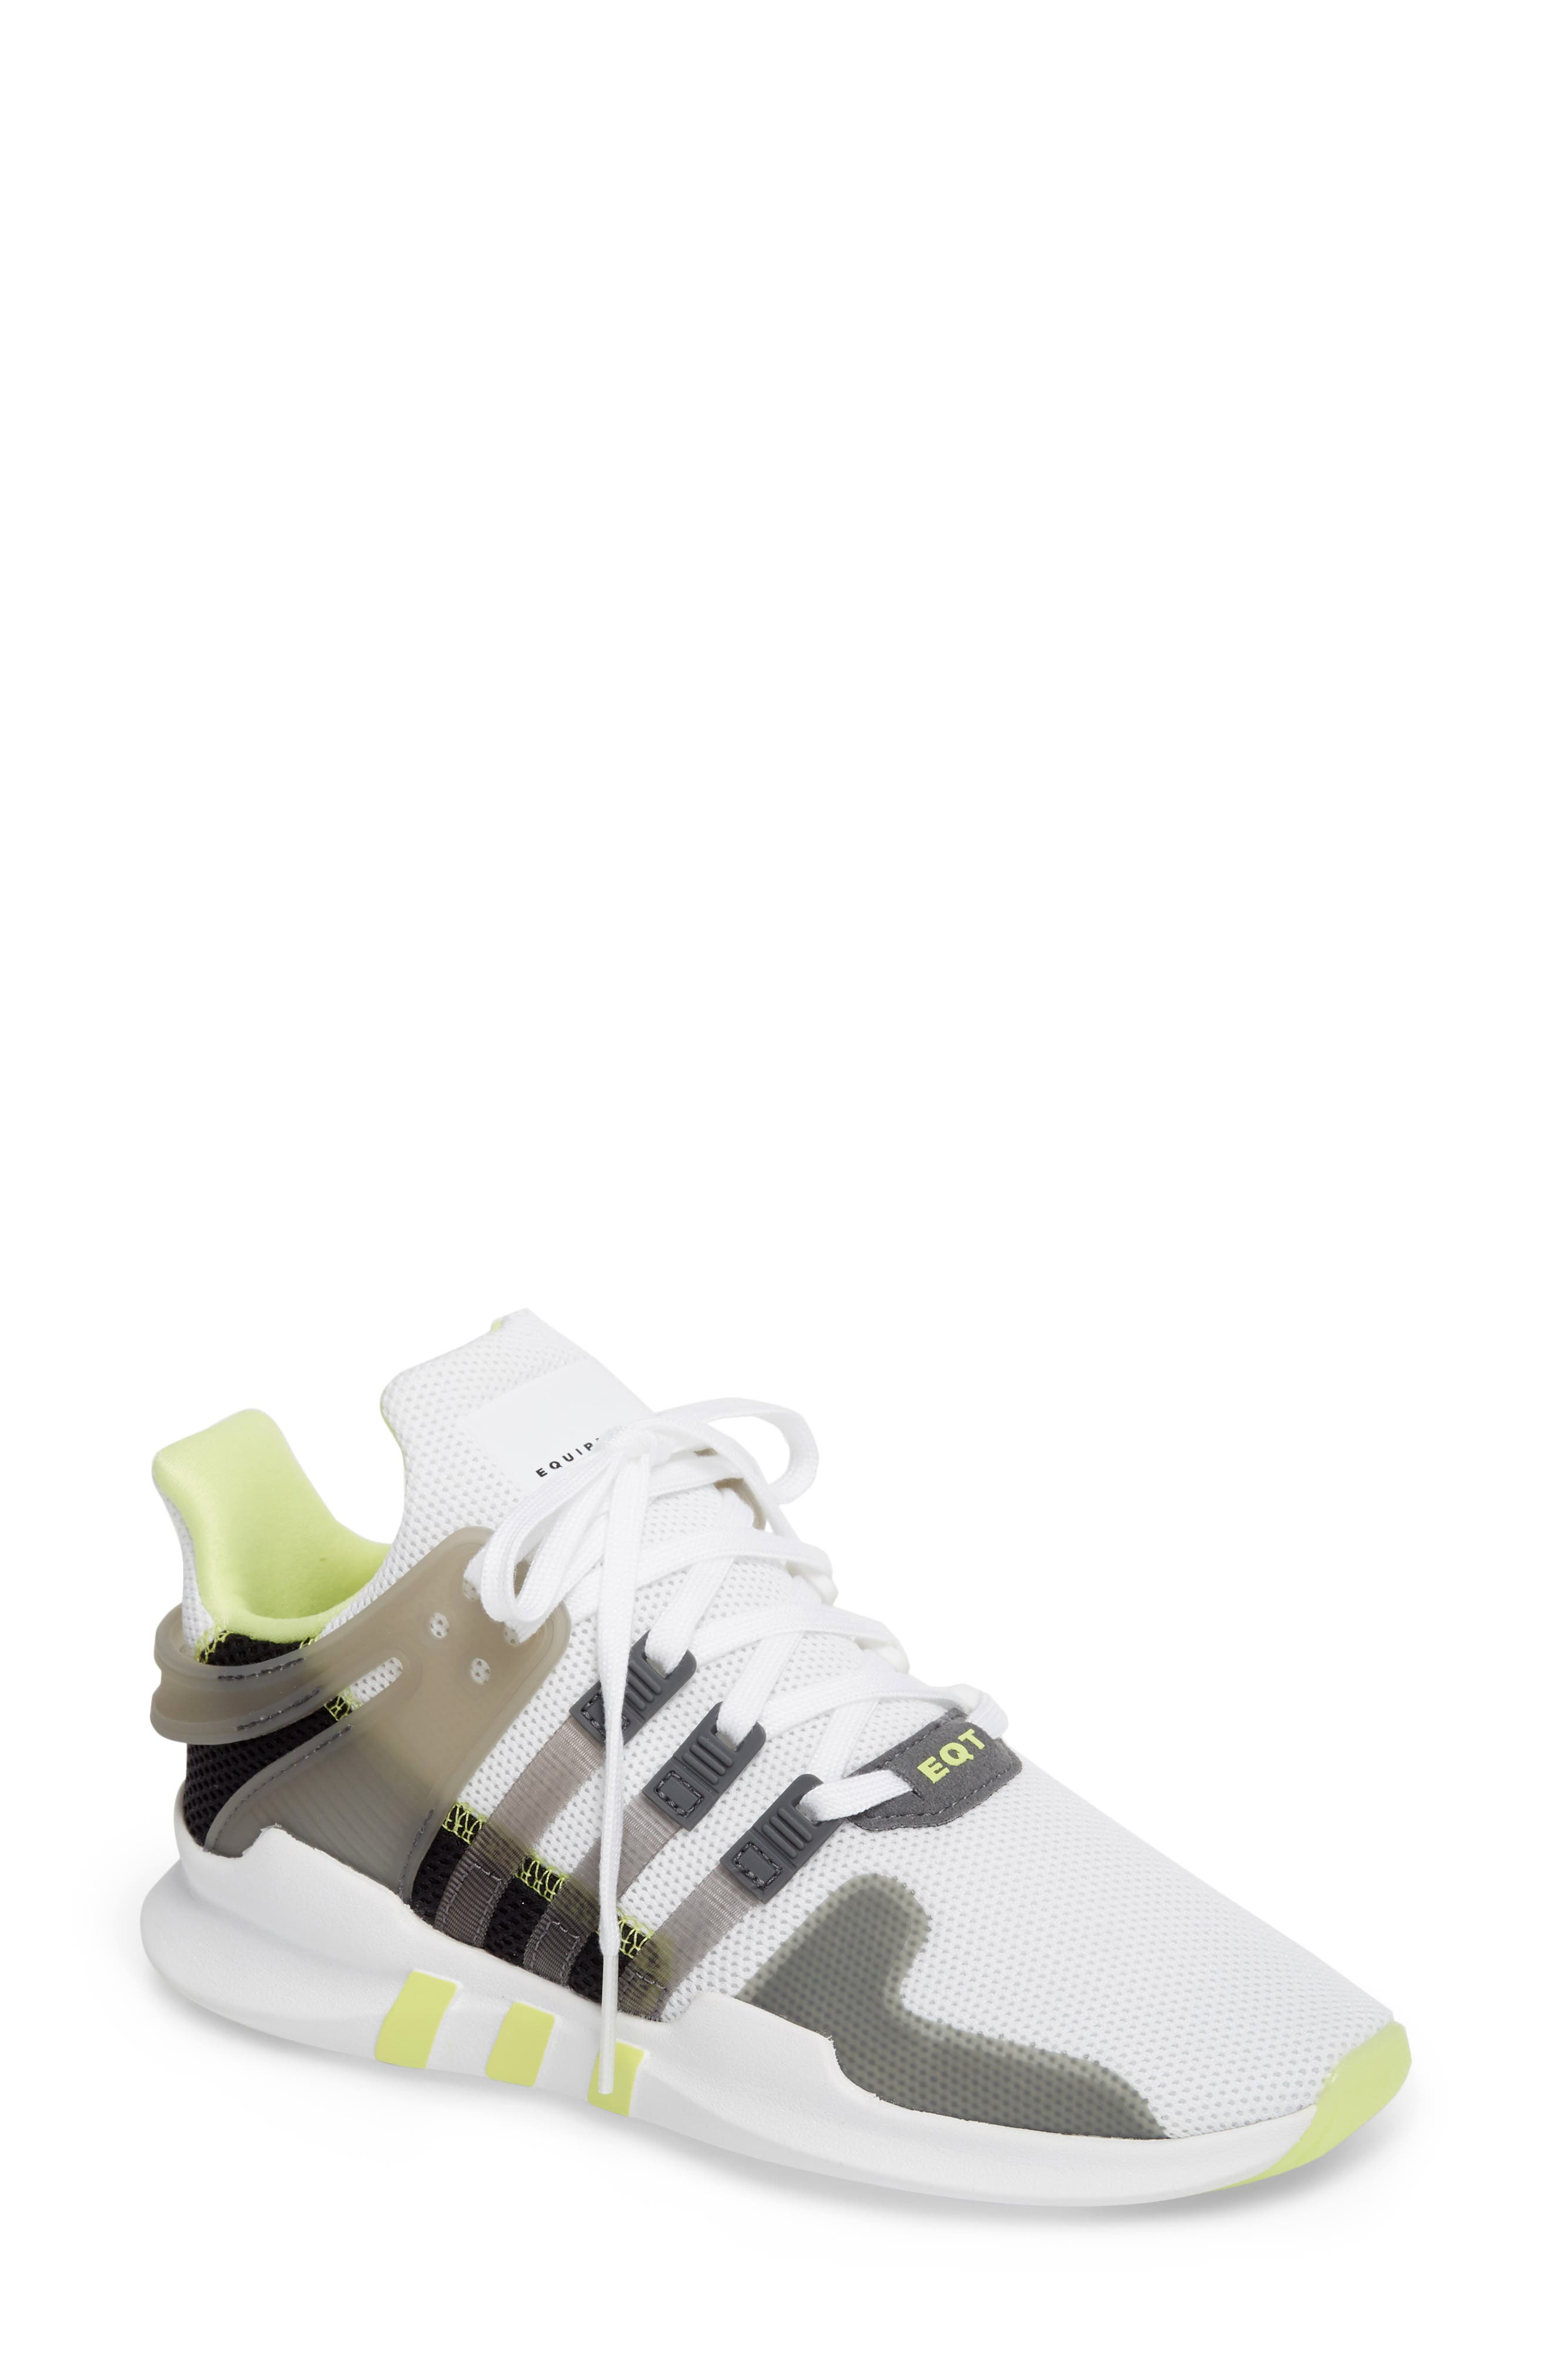 EQT Support Adv Sneaker,                             Main thumbnail 1, color,                             020